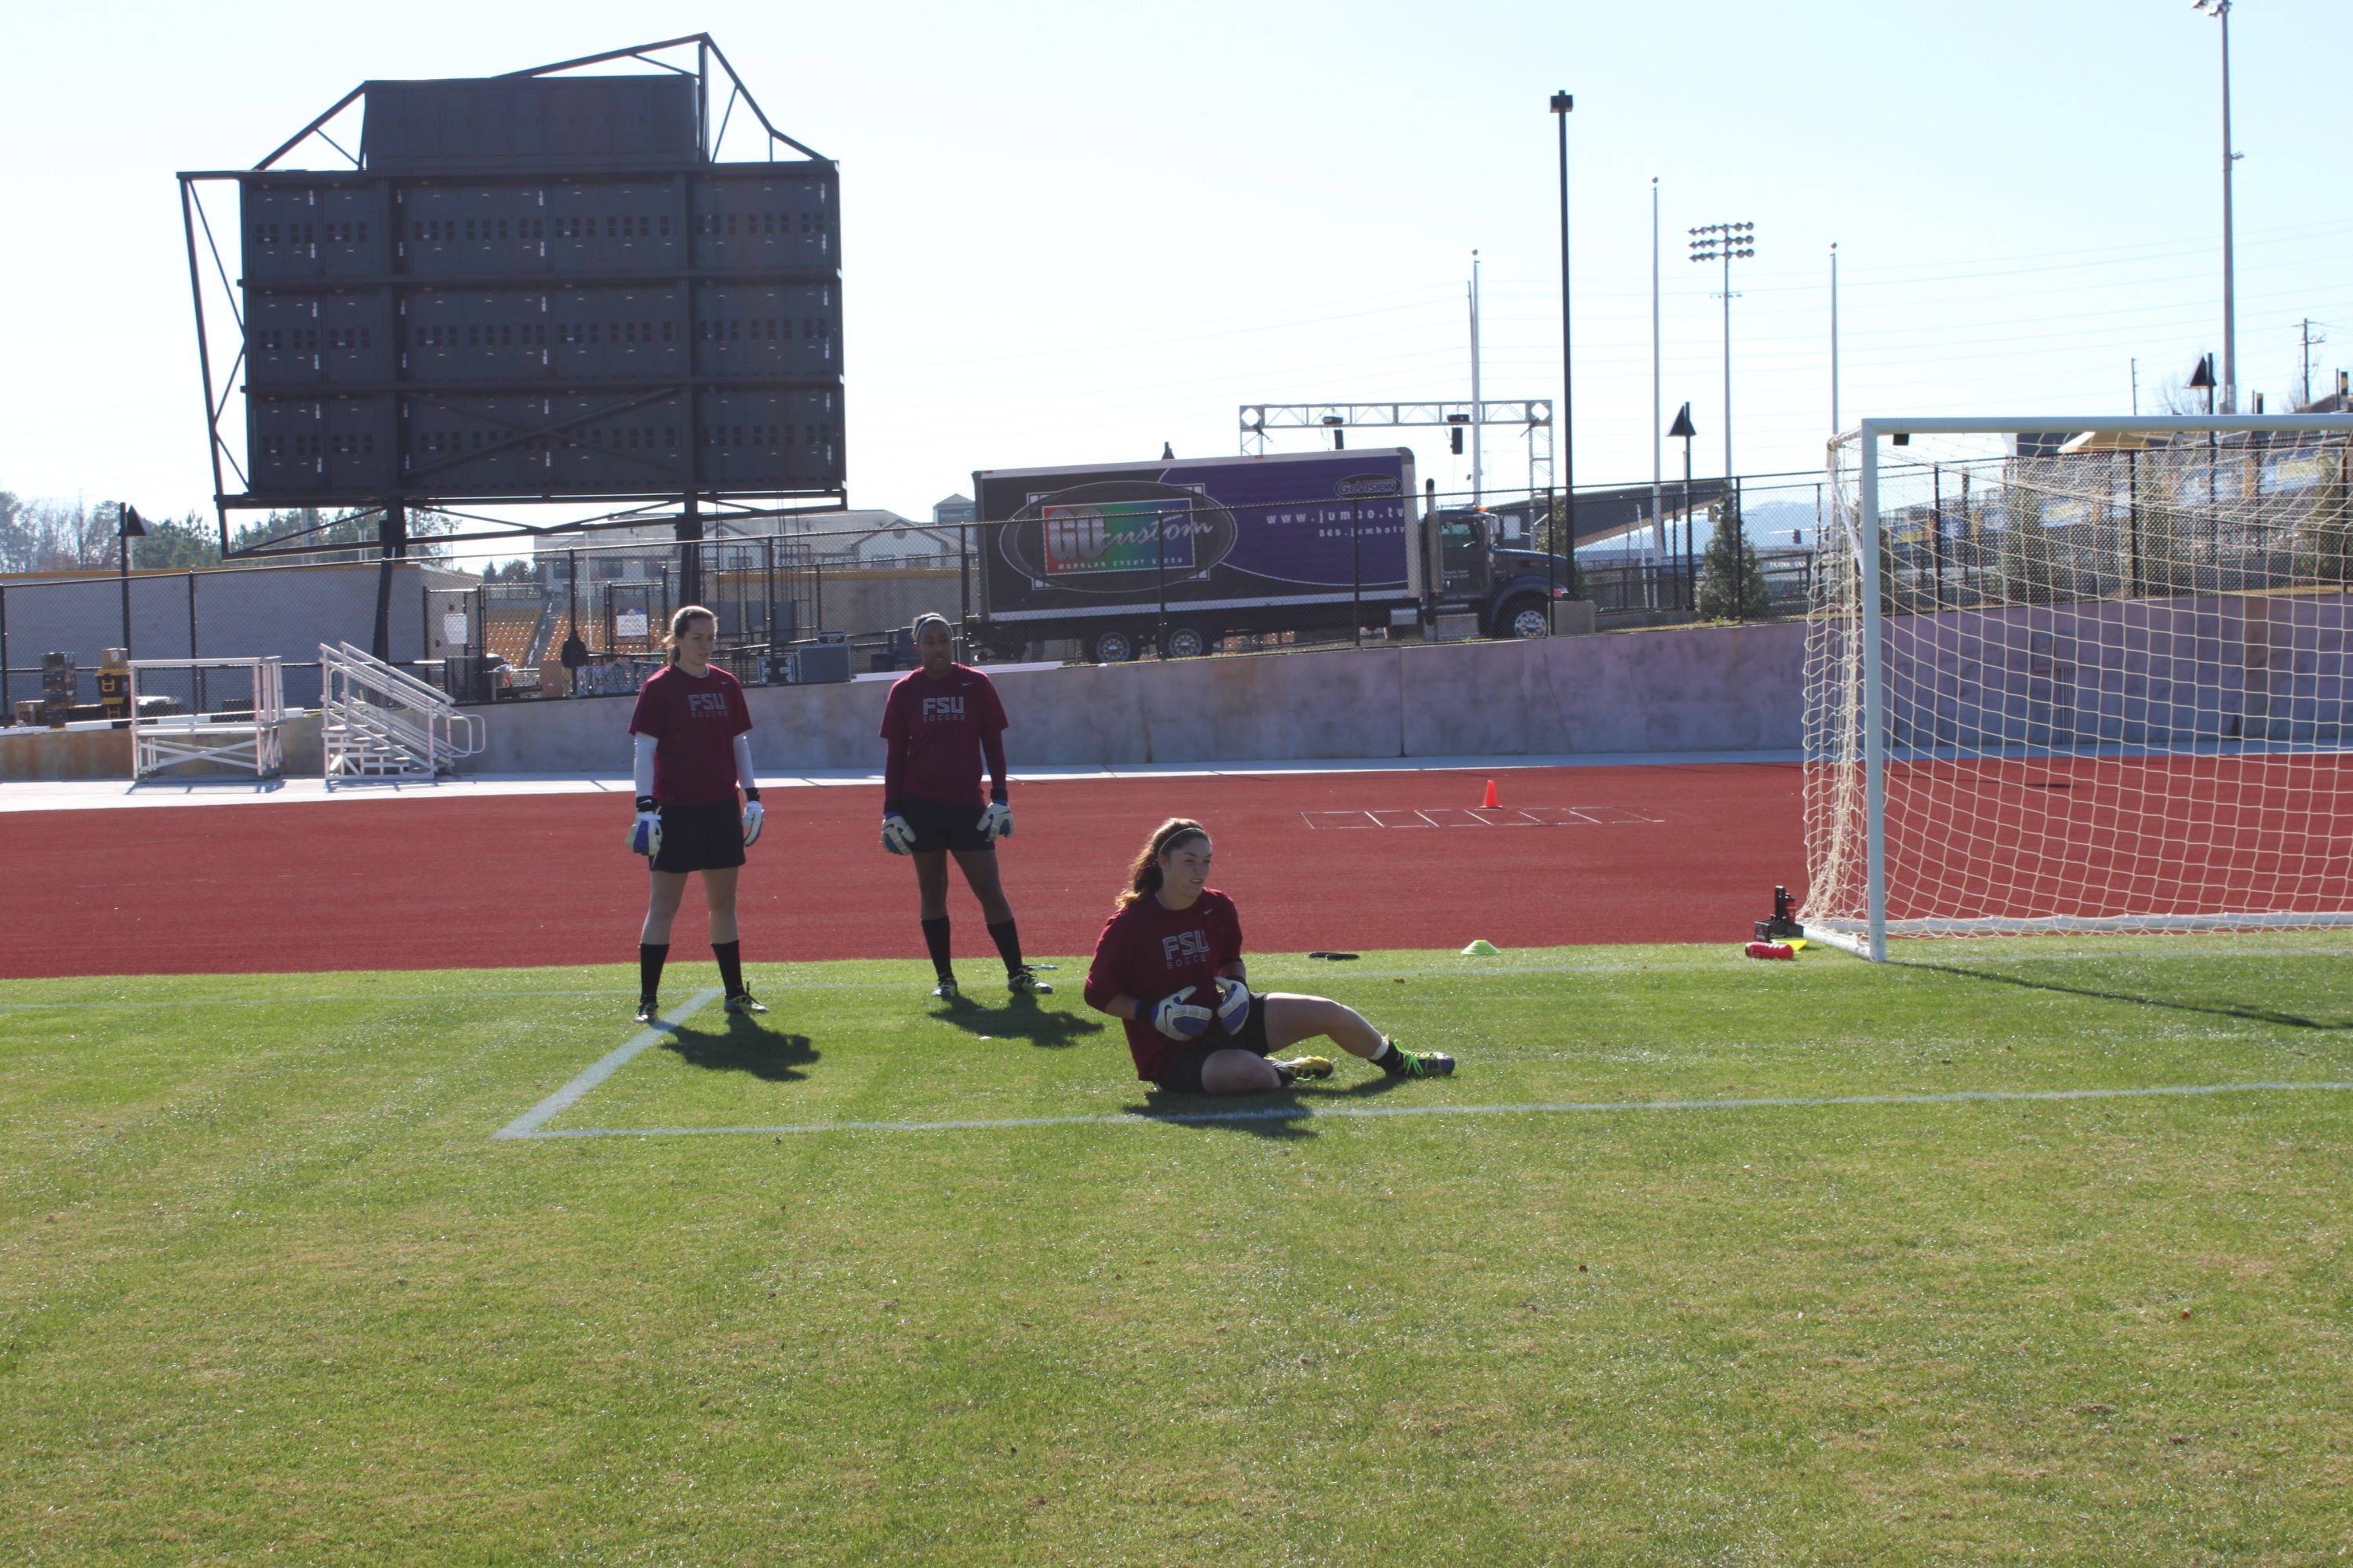 Goalies getting warmed up for practice at the Kennesaw Soccer Complex